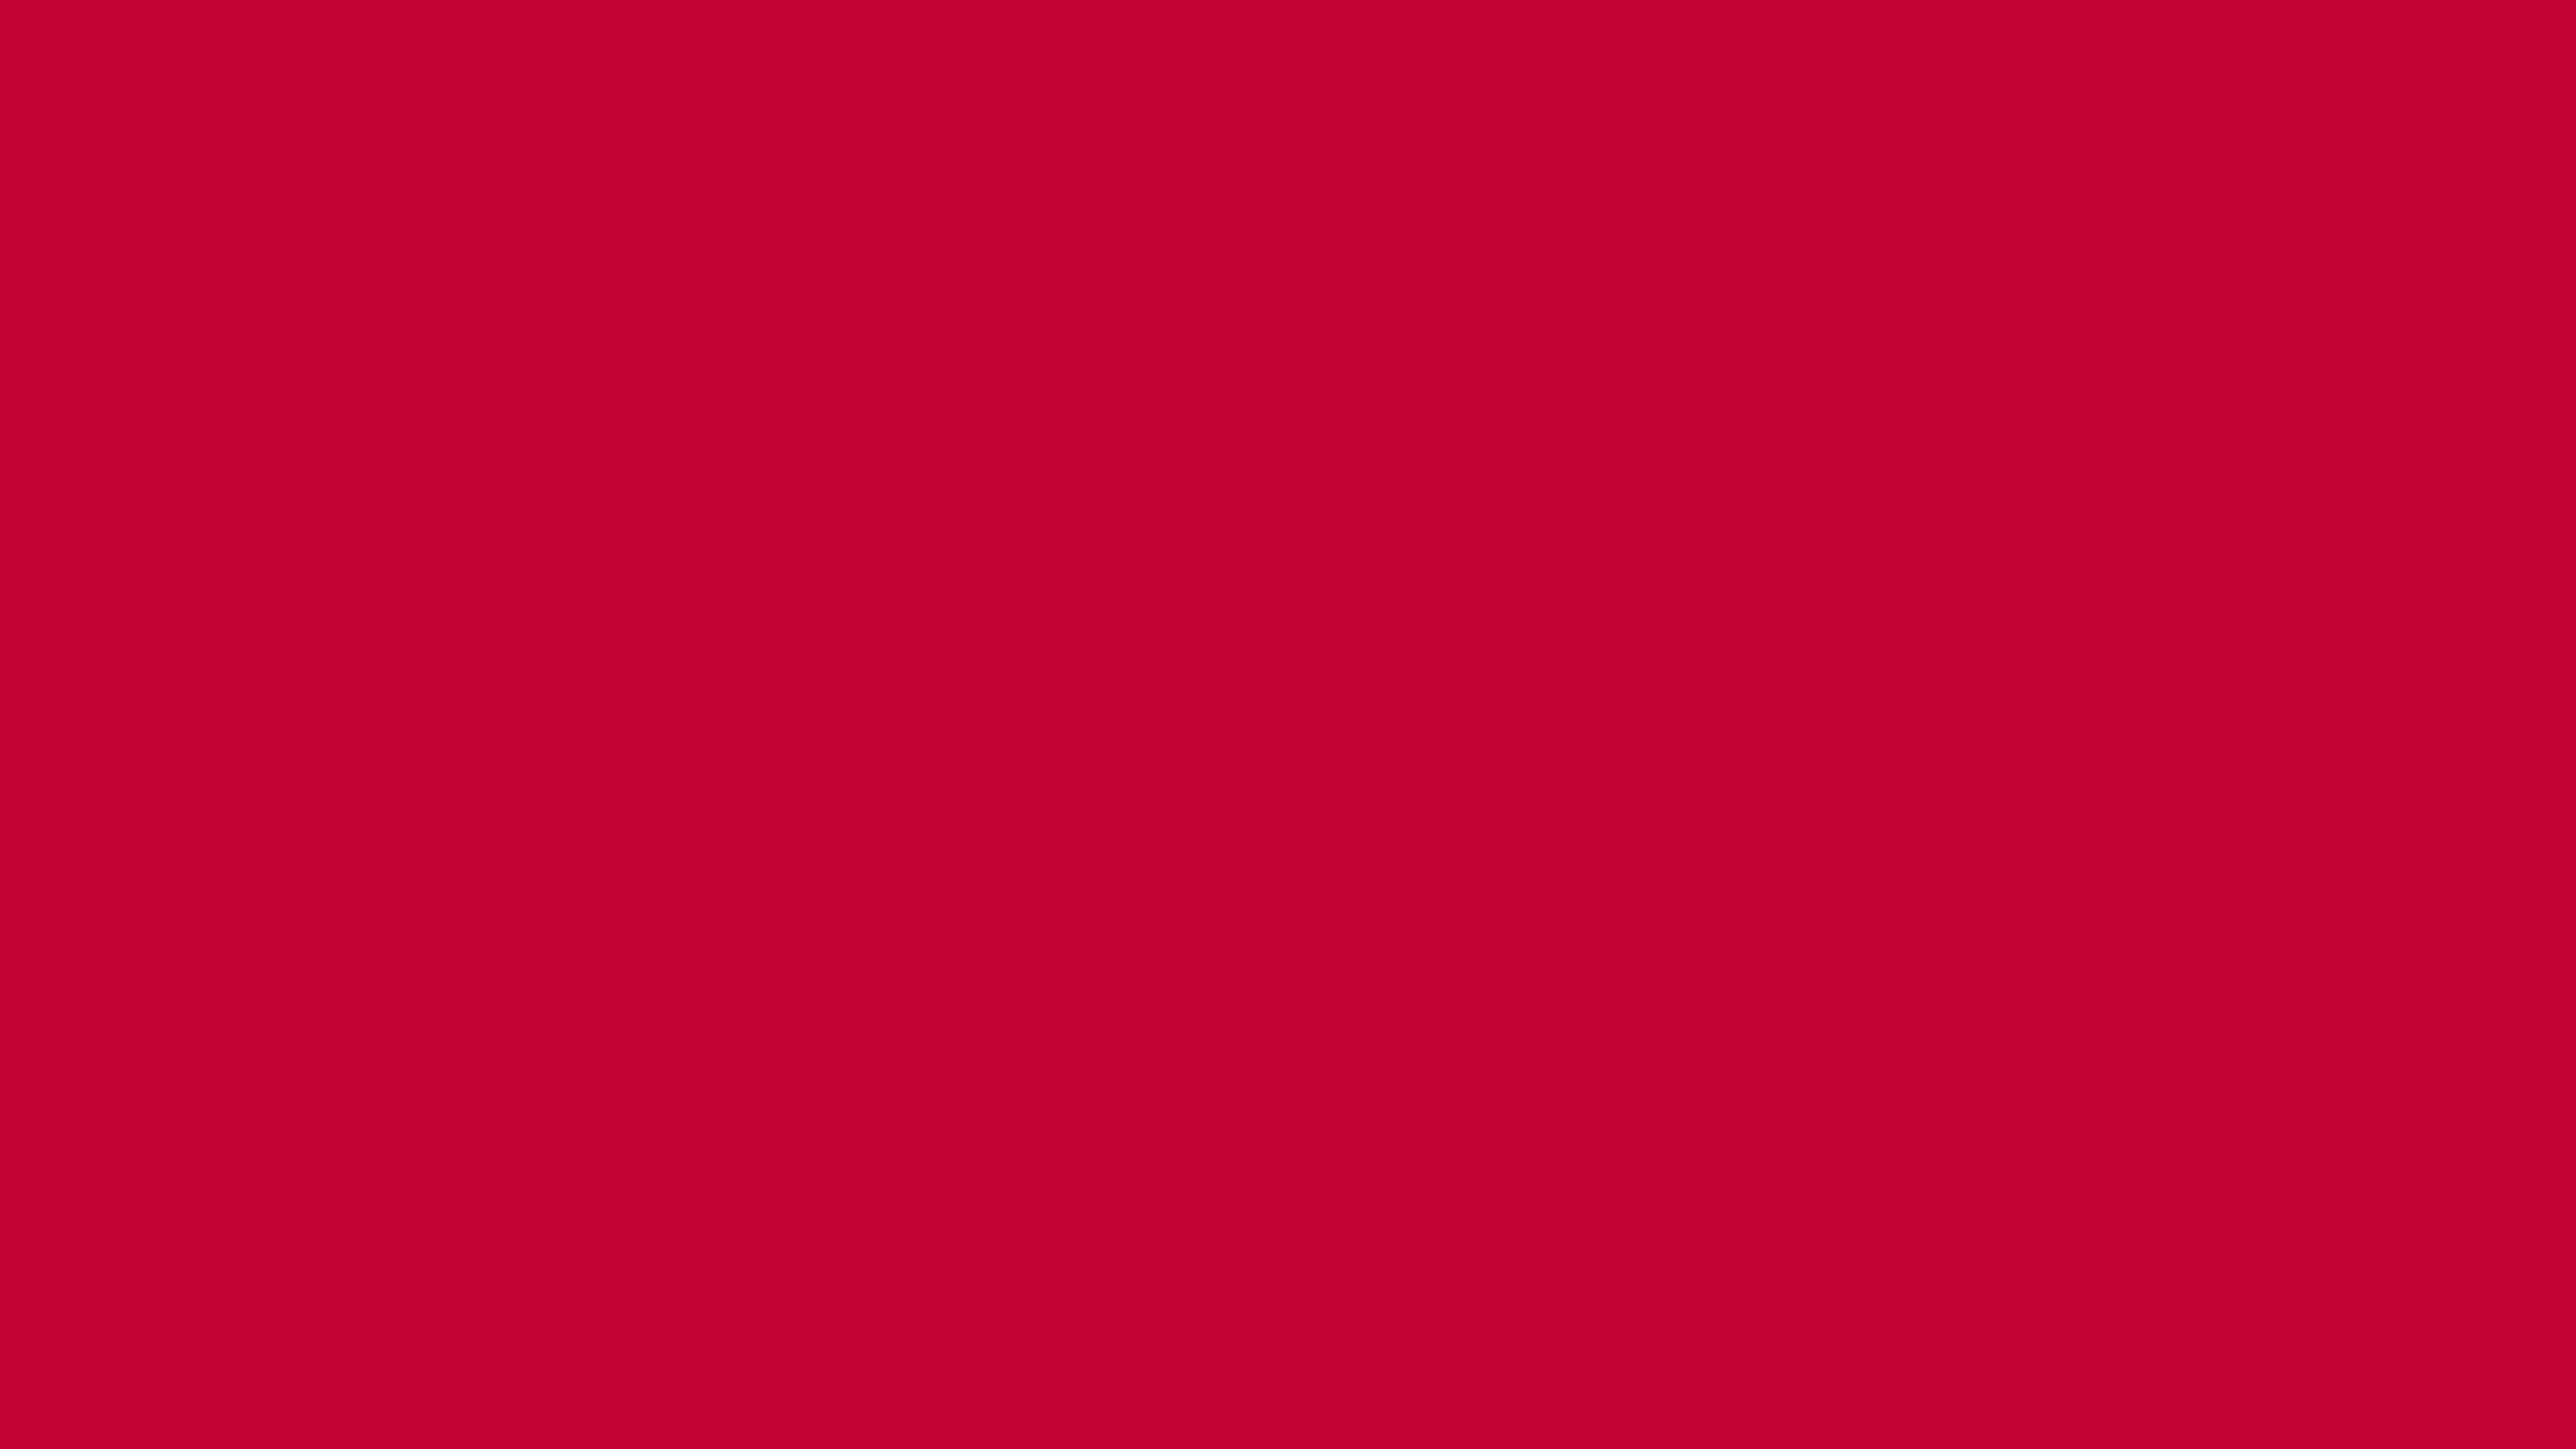 3840x2160 Red NCS Solid Color Background